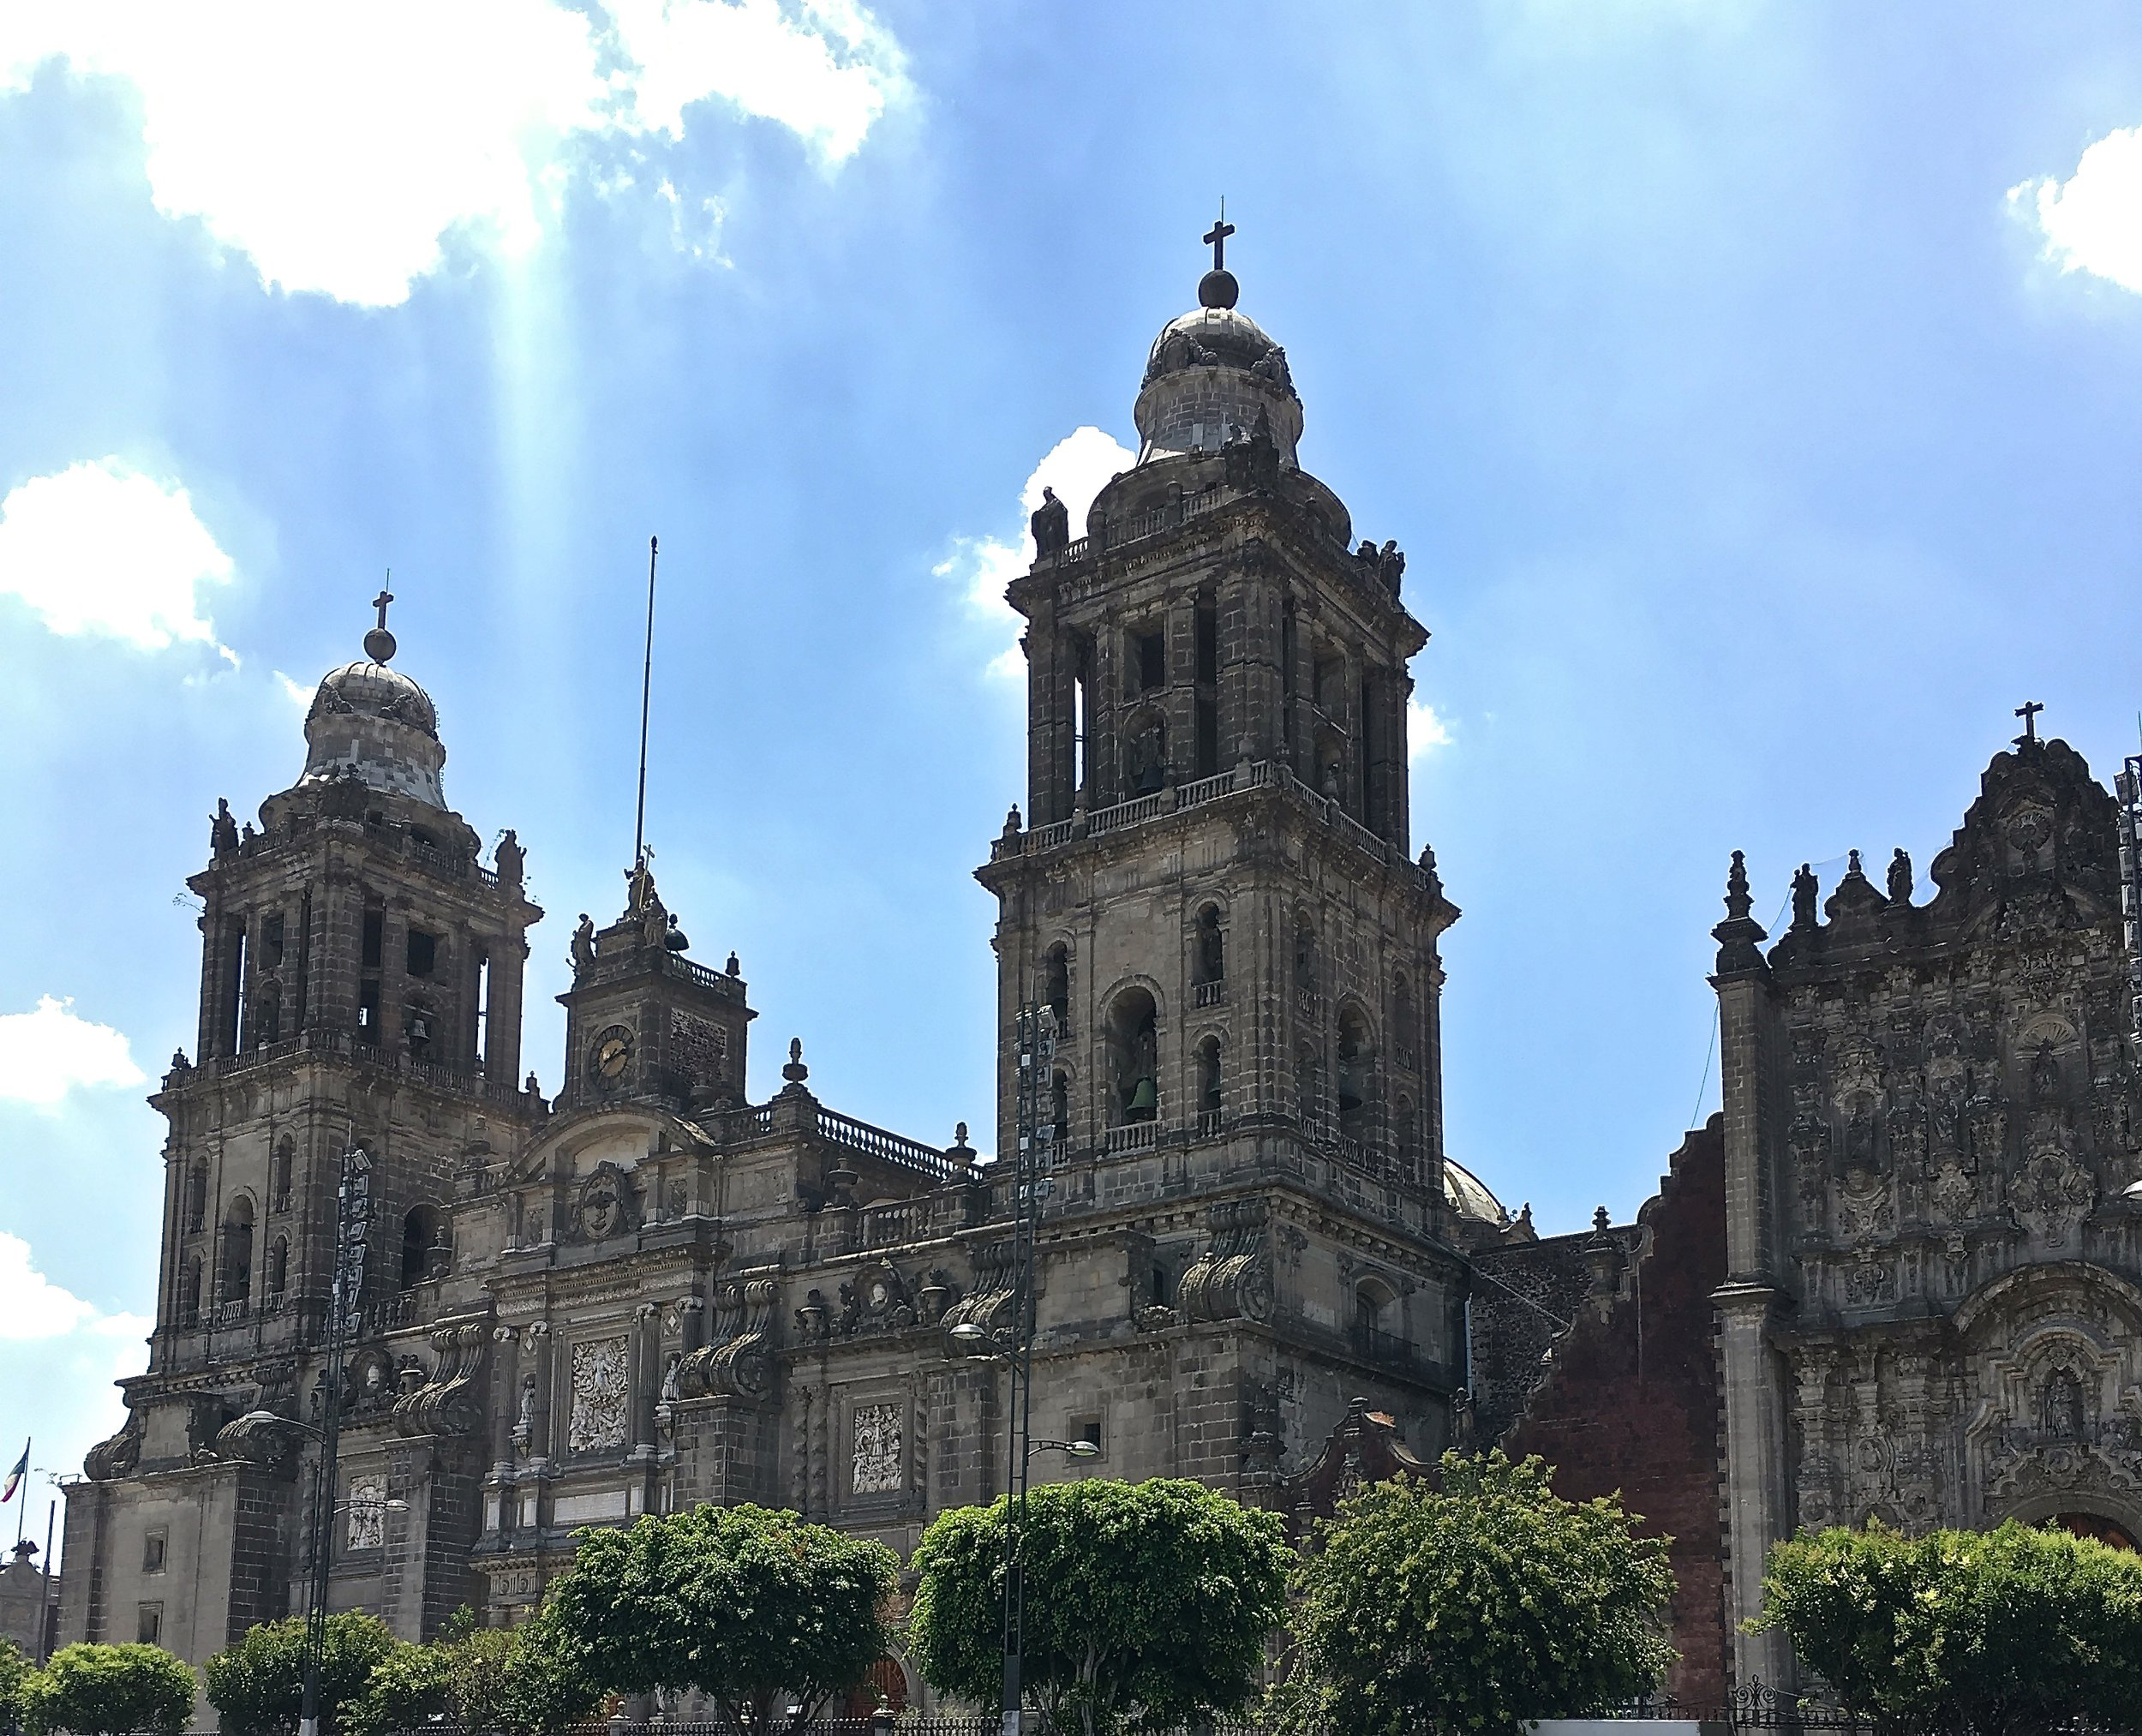 The Mexico City Metropolitan Cathedral with it's beautiful relief carvings.